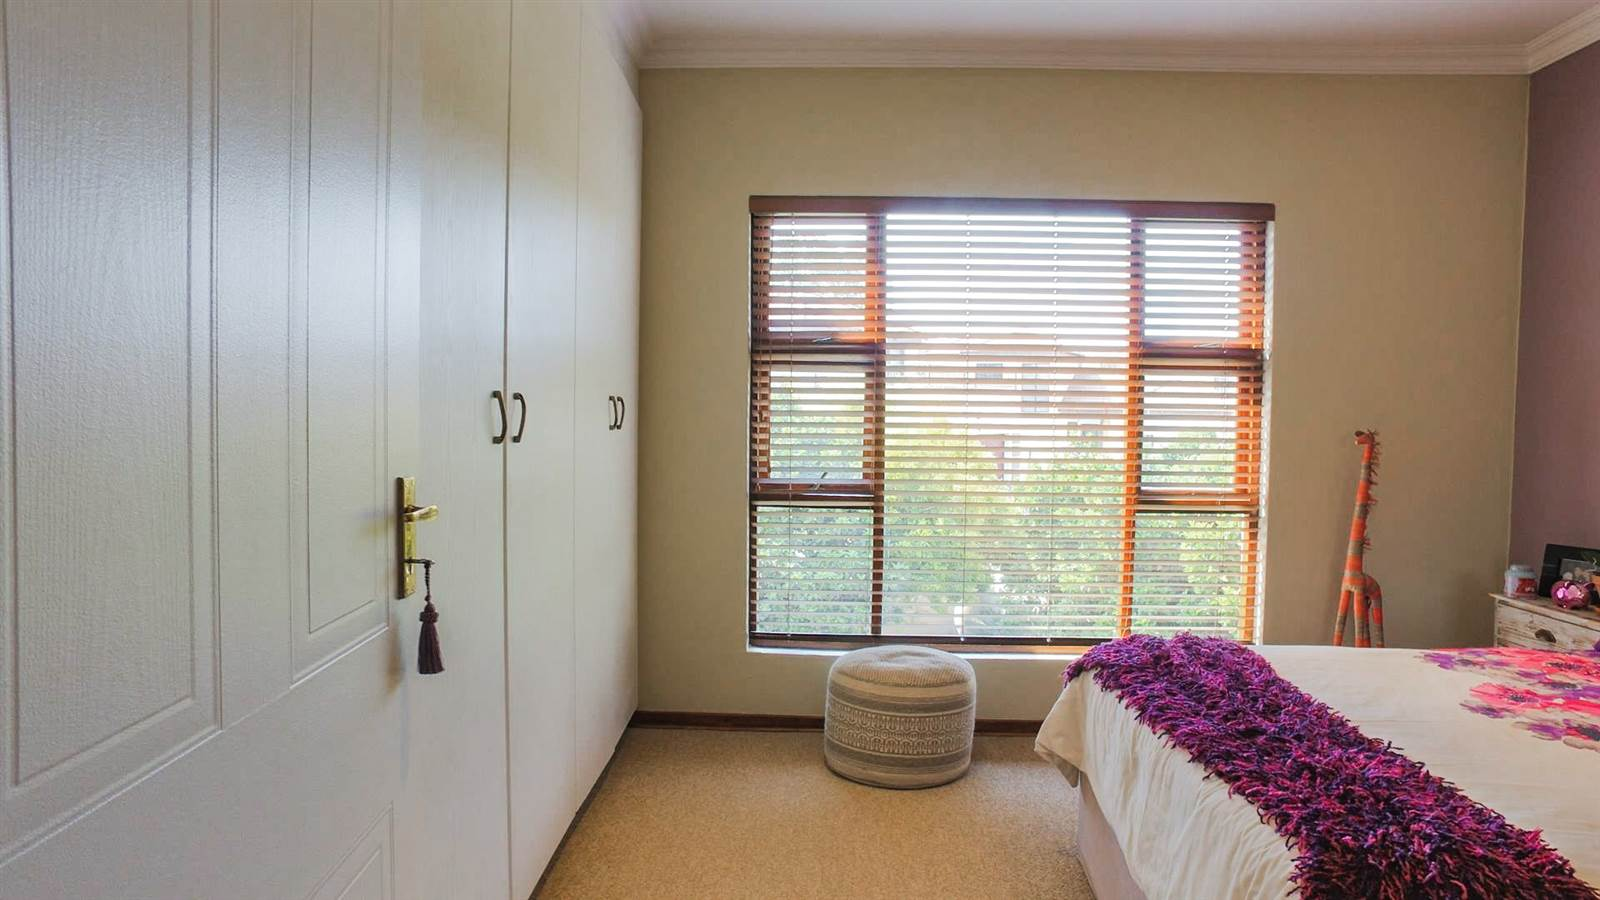 4 Bedroom Townhouse for sale in Mulbarton ENT0067436 : photo#24